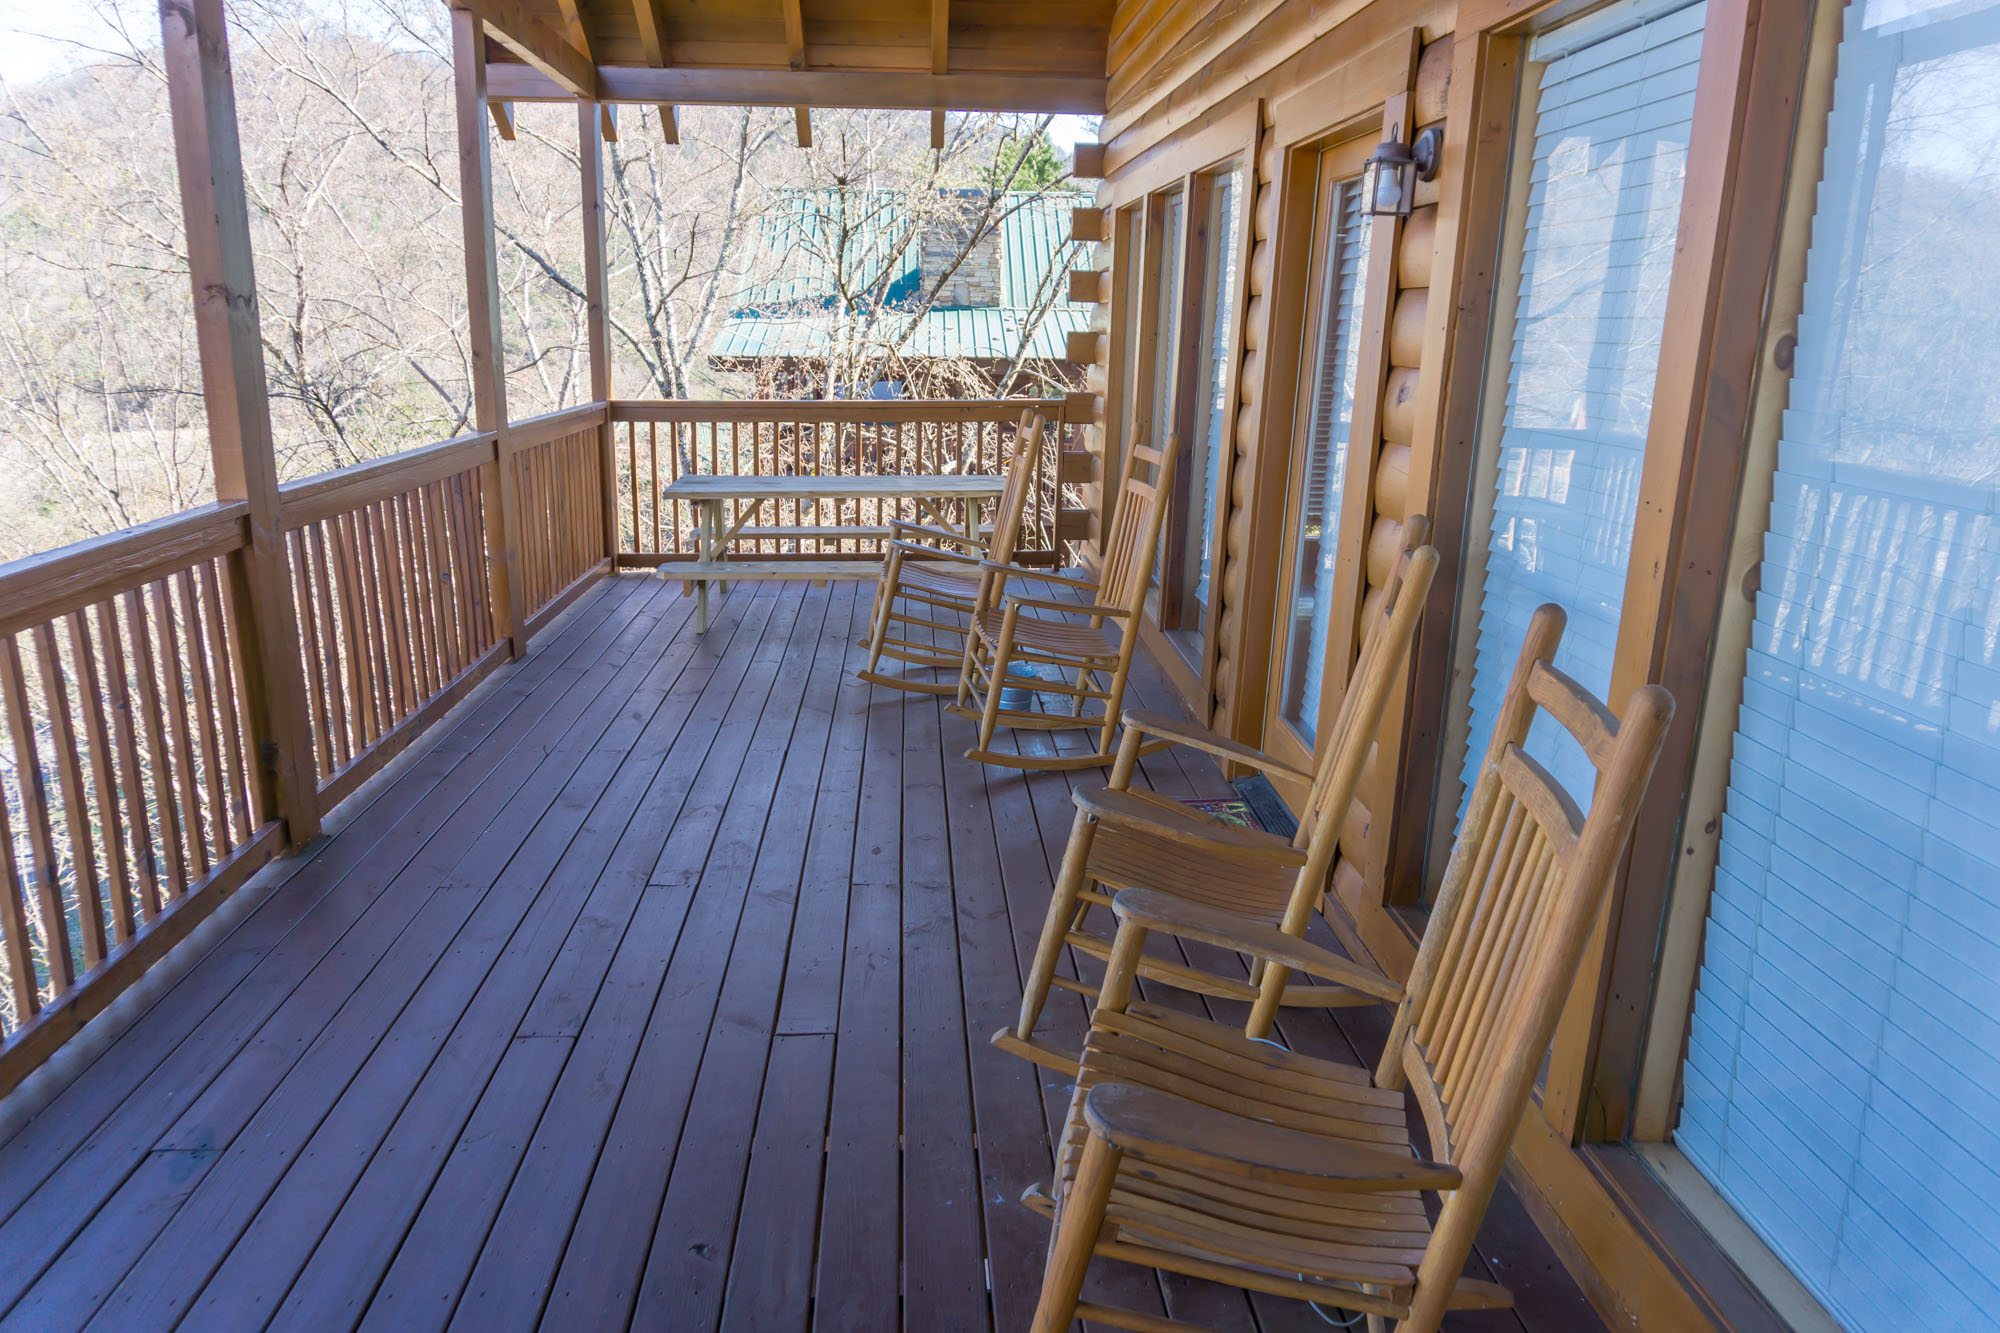 Main level deck w/ rockers and picnic table